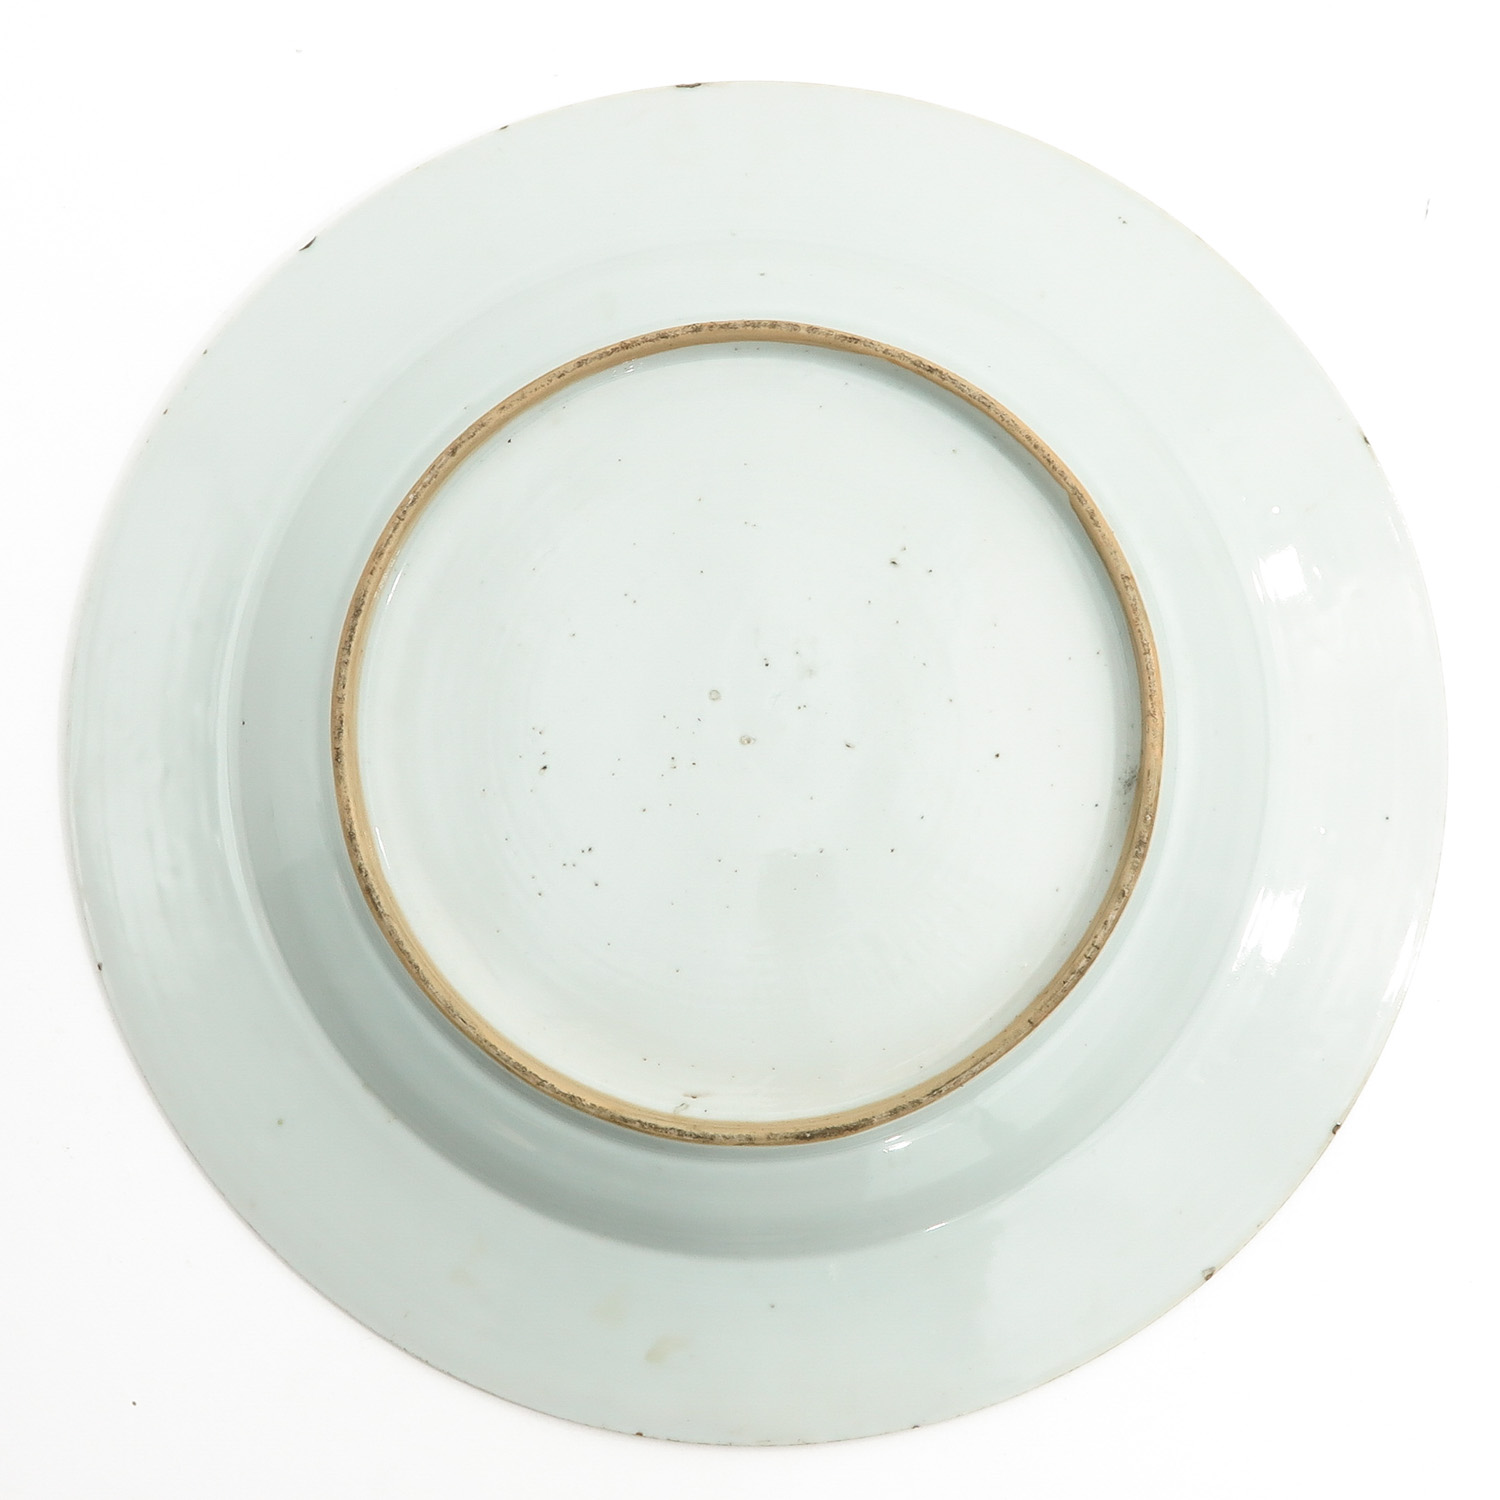 A Blue and Gilt Decor Charger - Image 2 of 6